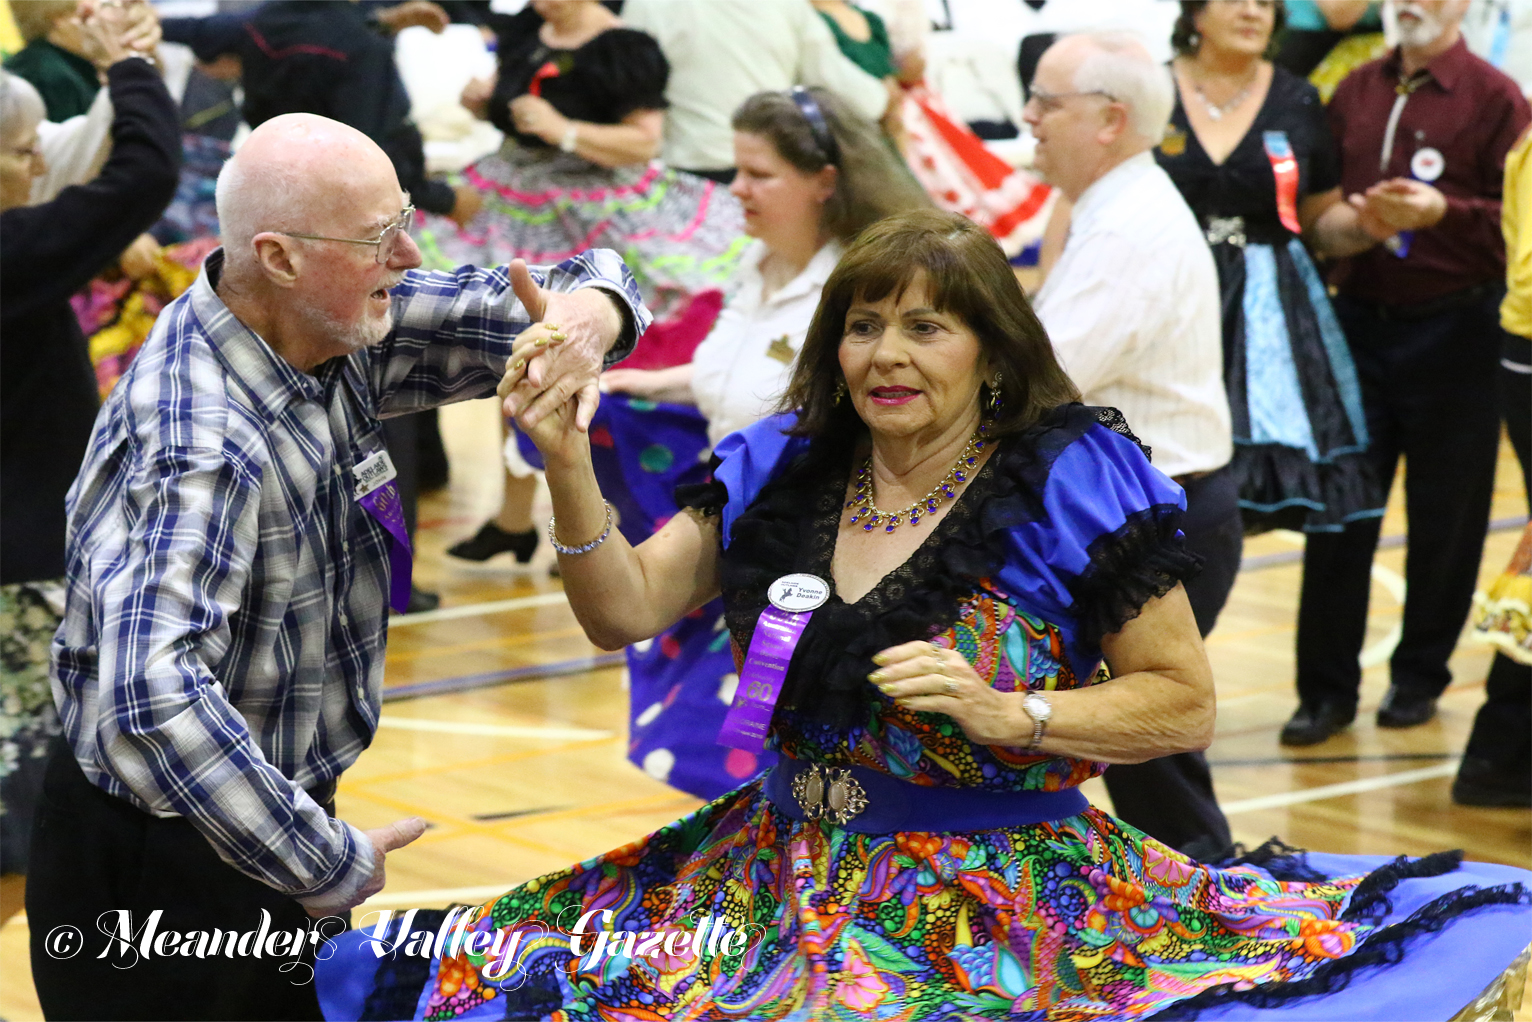 The Community Complex was a sea of movement and colour as over 600 square dancers took to the dance floor to strut their stuff.  Photo by Mike Moores